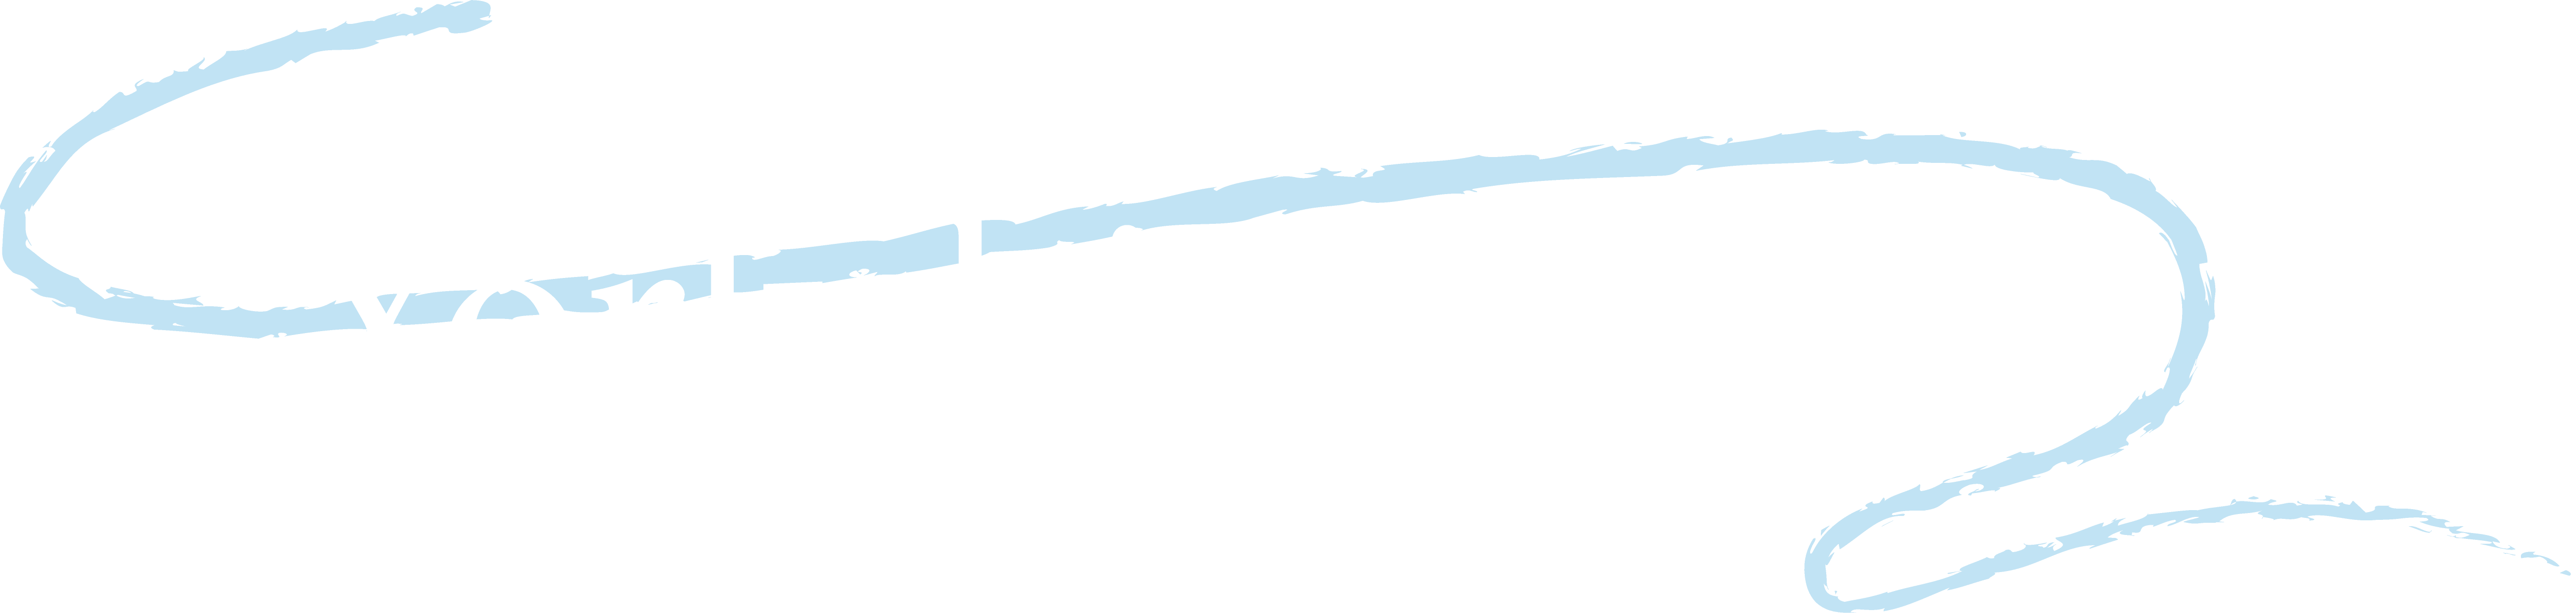 Yorkshire Dales Rivers Trust